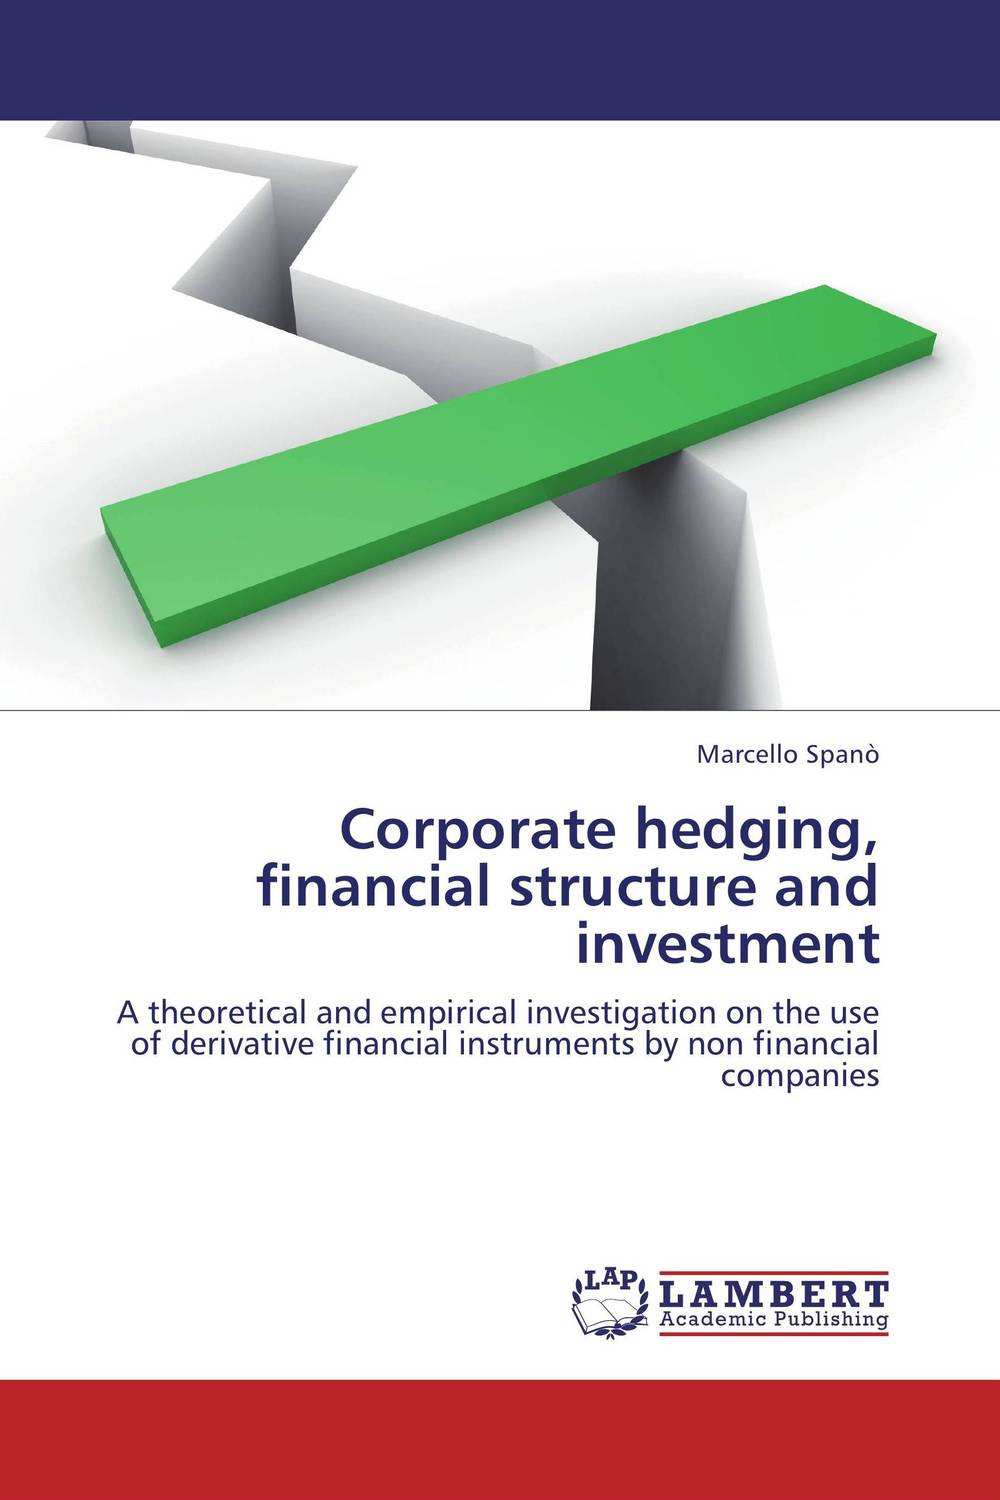 Corporate hedging, financial structure and investment is working capital management a key determinant on corporate profit